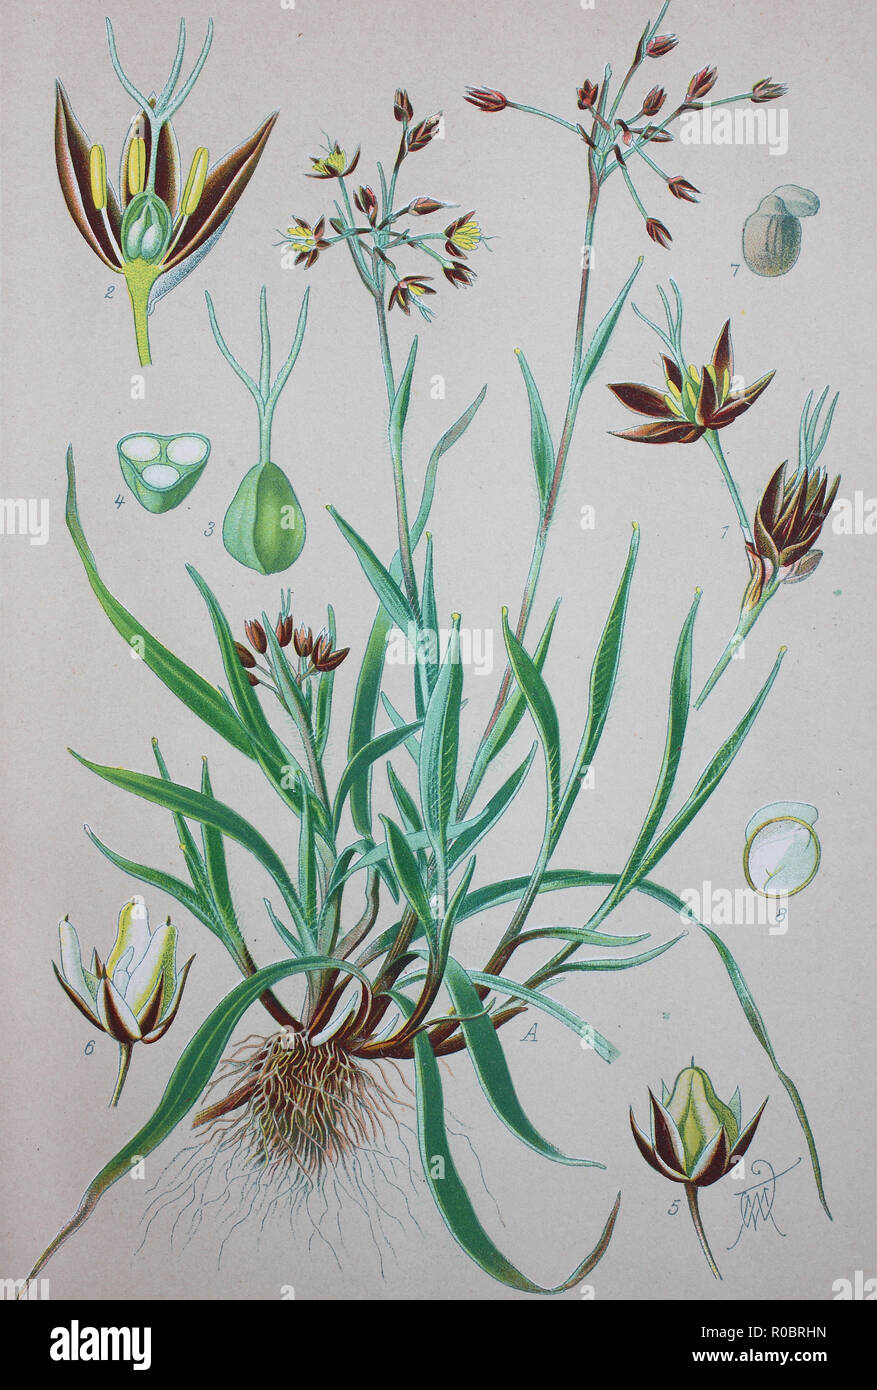 Digital improved high quality reproduction: Luzula pilosa is a species of flowering plant in the rush family Juncaceae with the common name hairy wood-rush - Stock Image